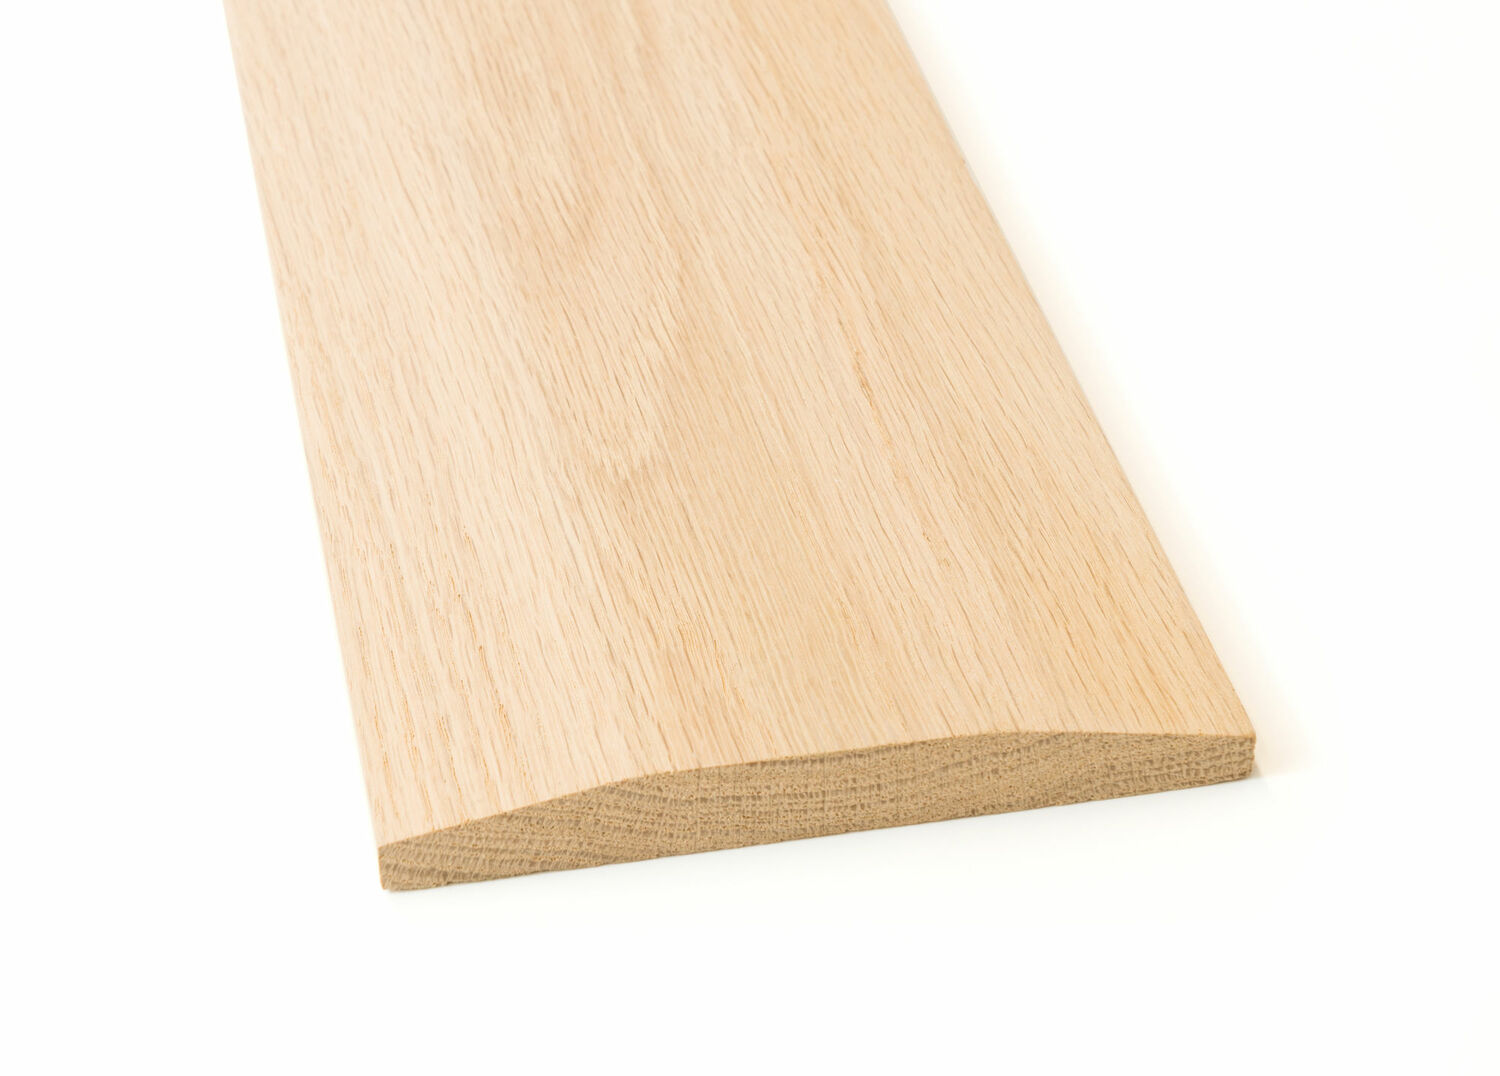 Cut To Size American White Oak Chamfered Door Threshold